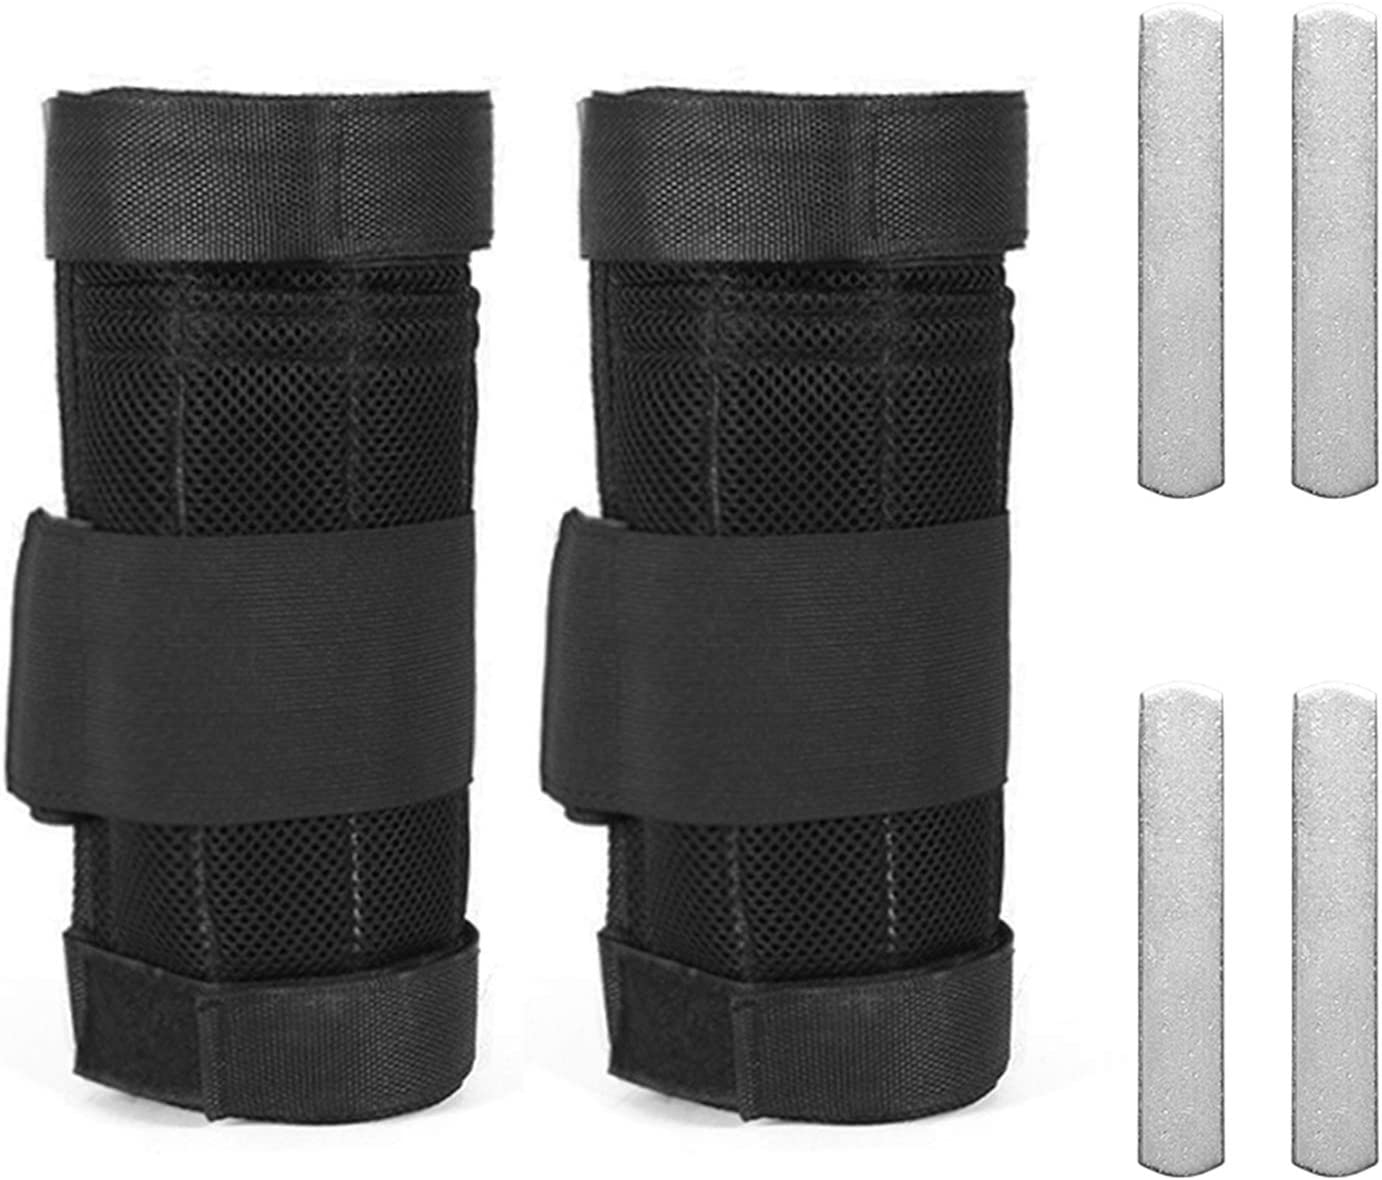 Daseey 2 Packs Adjustable Ankle Weight Weighted Ranking TOP6 Wor Leg Miami Mall Exercise